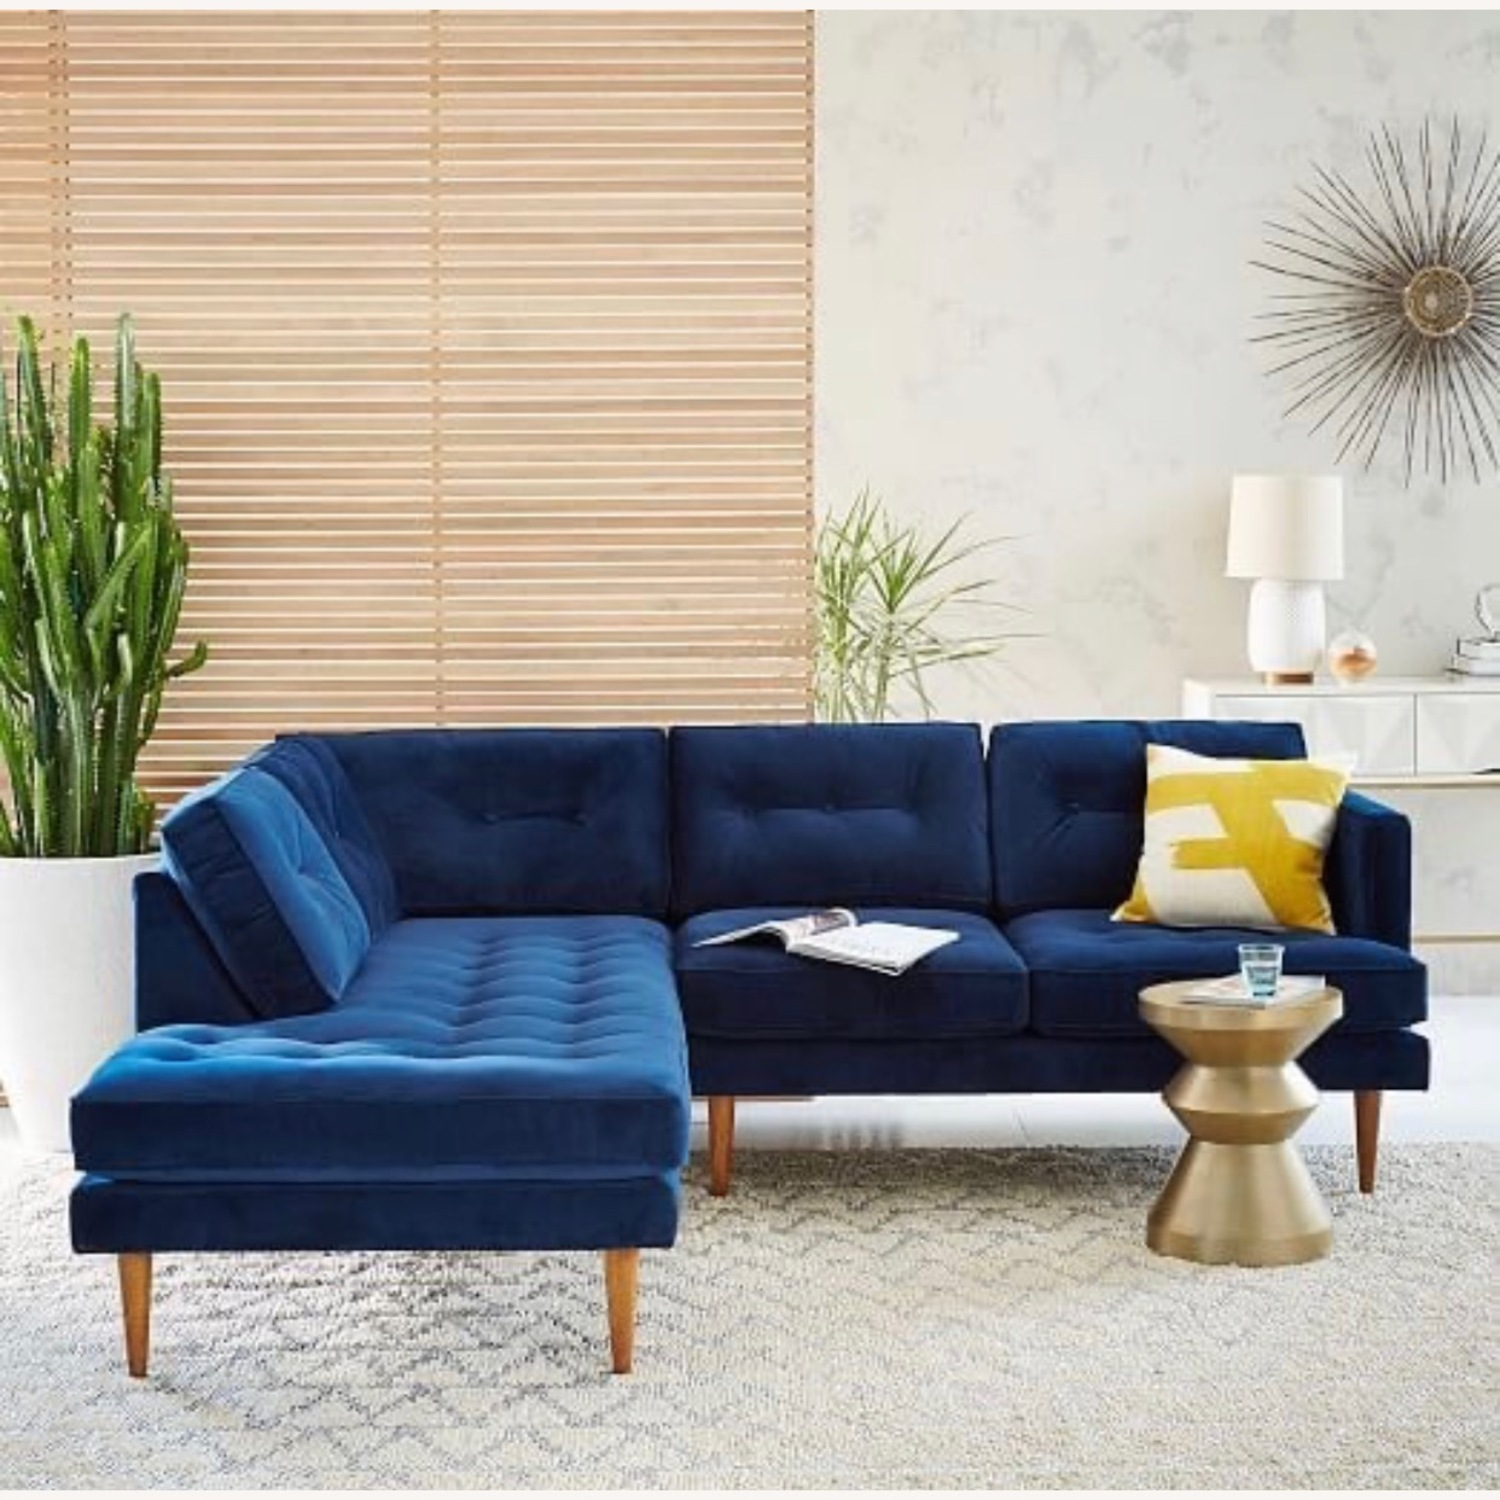 West Elm Like New Chaise Sectional - image-1